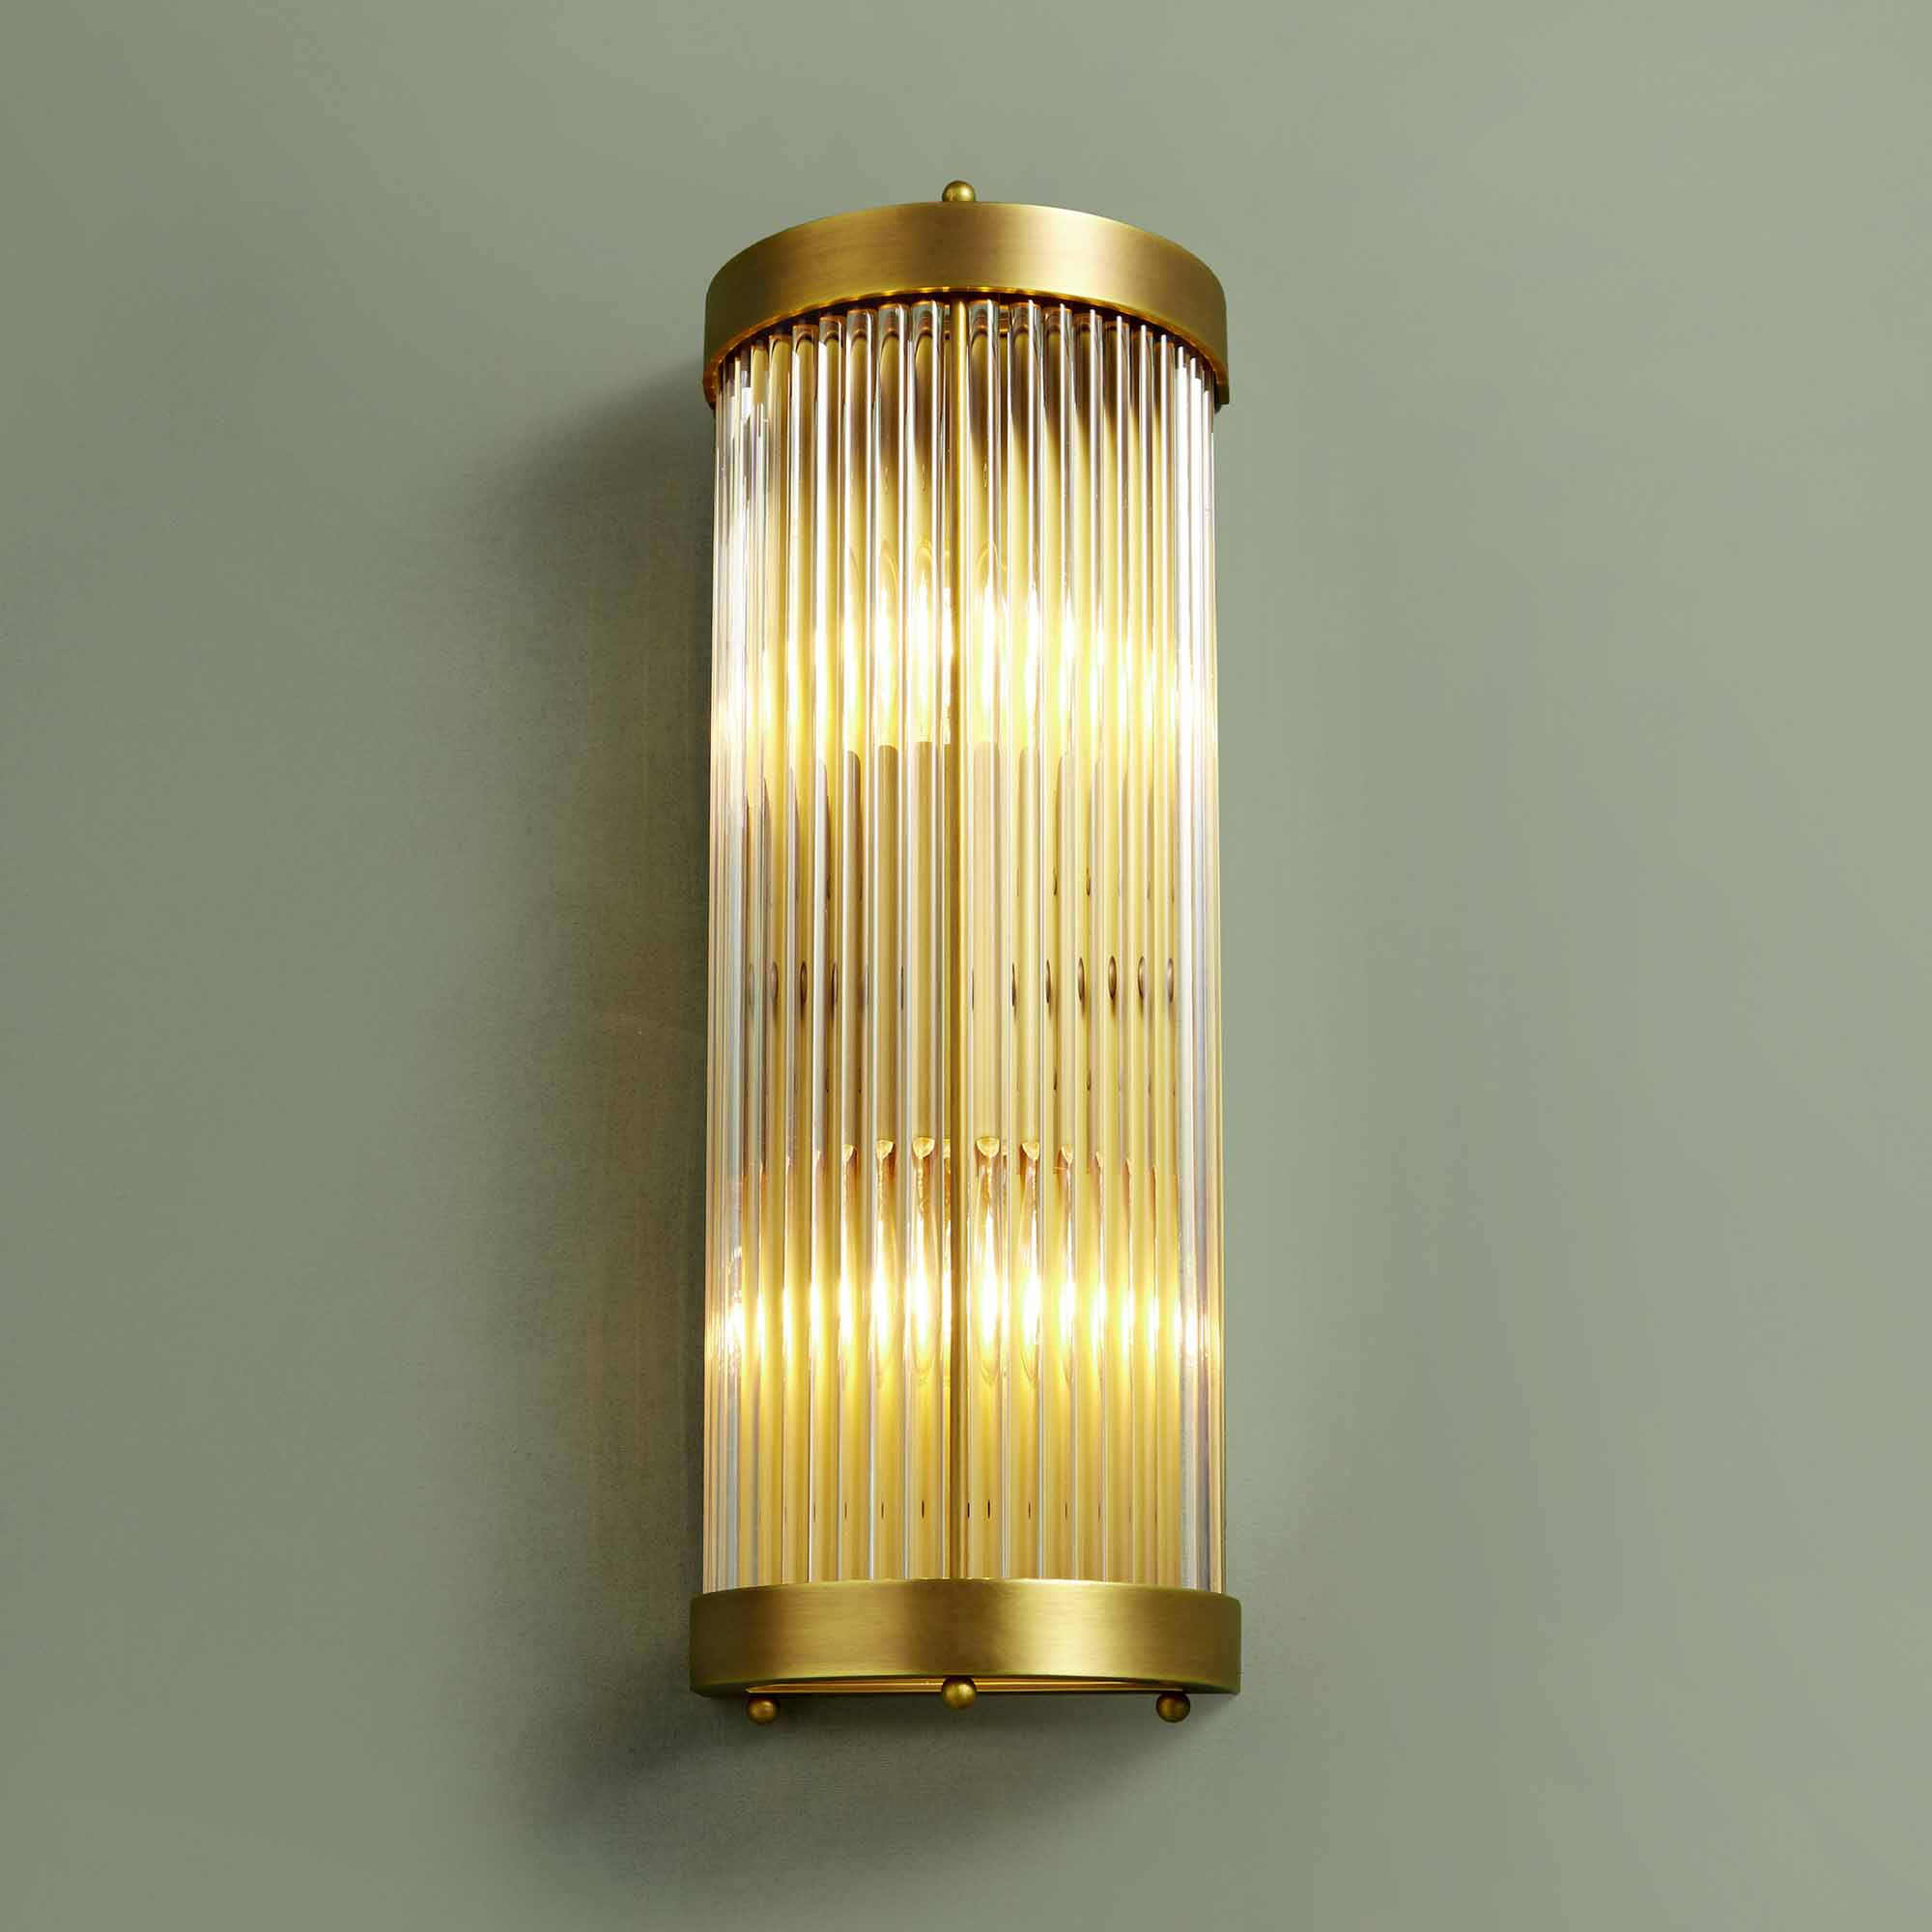 10 Reasons for the brass bathroom wall lights  Warisan